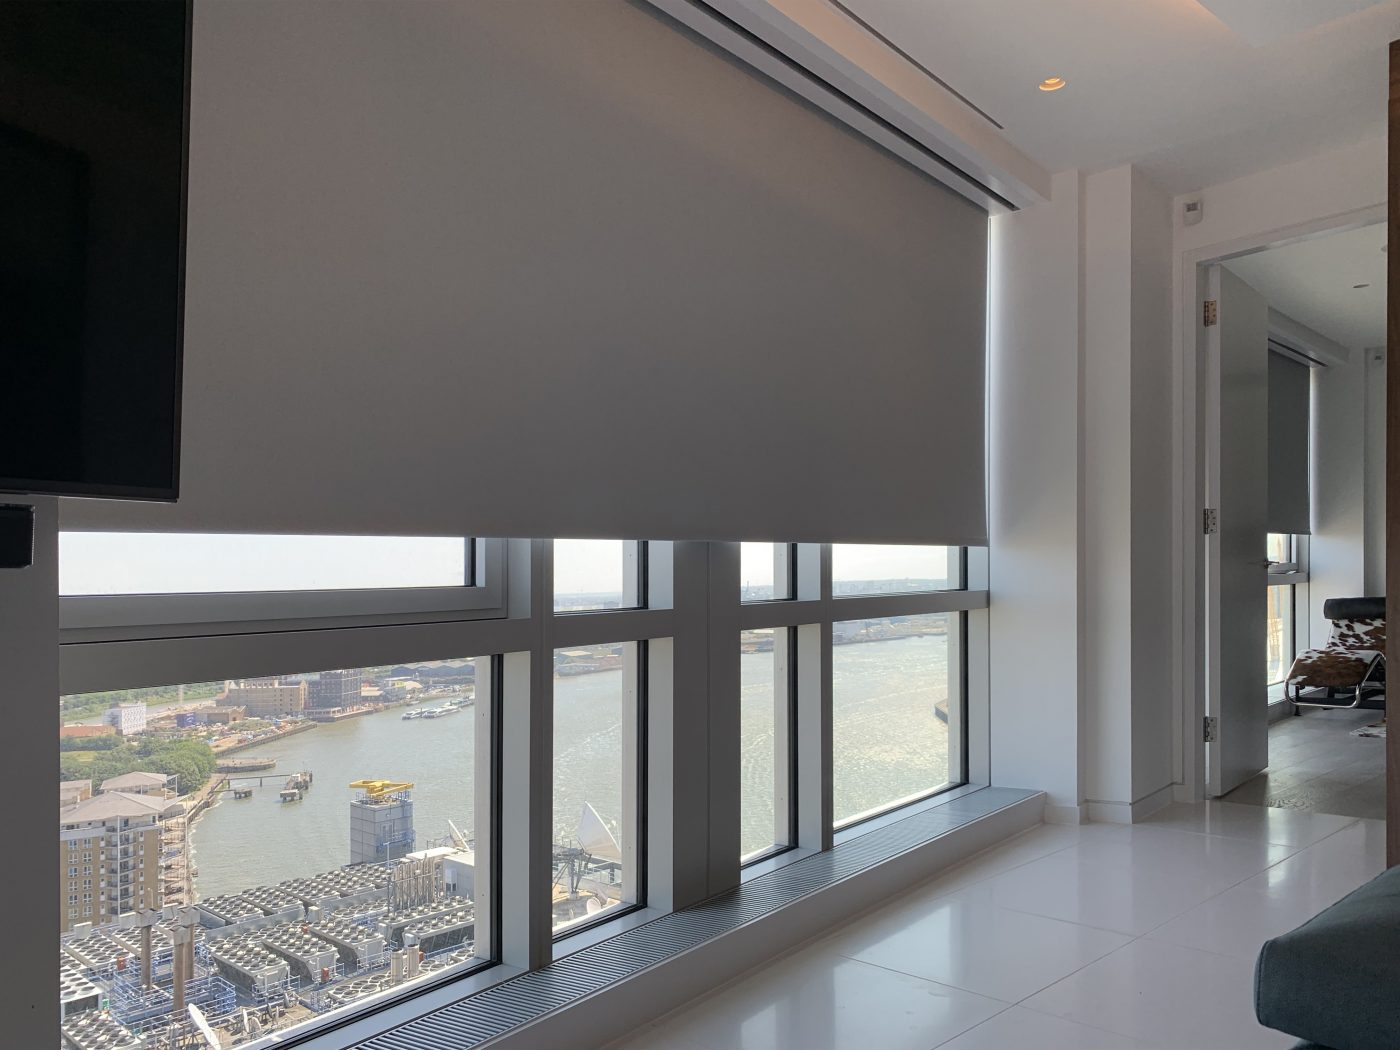 Motorised Blackout Blinds Installed by The Electric Blind Company At Canary Wharf London